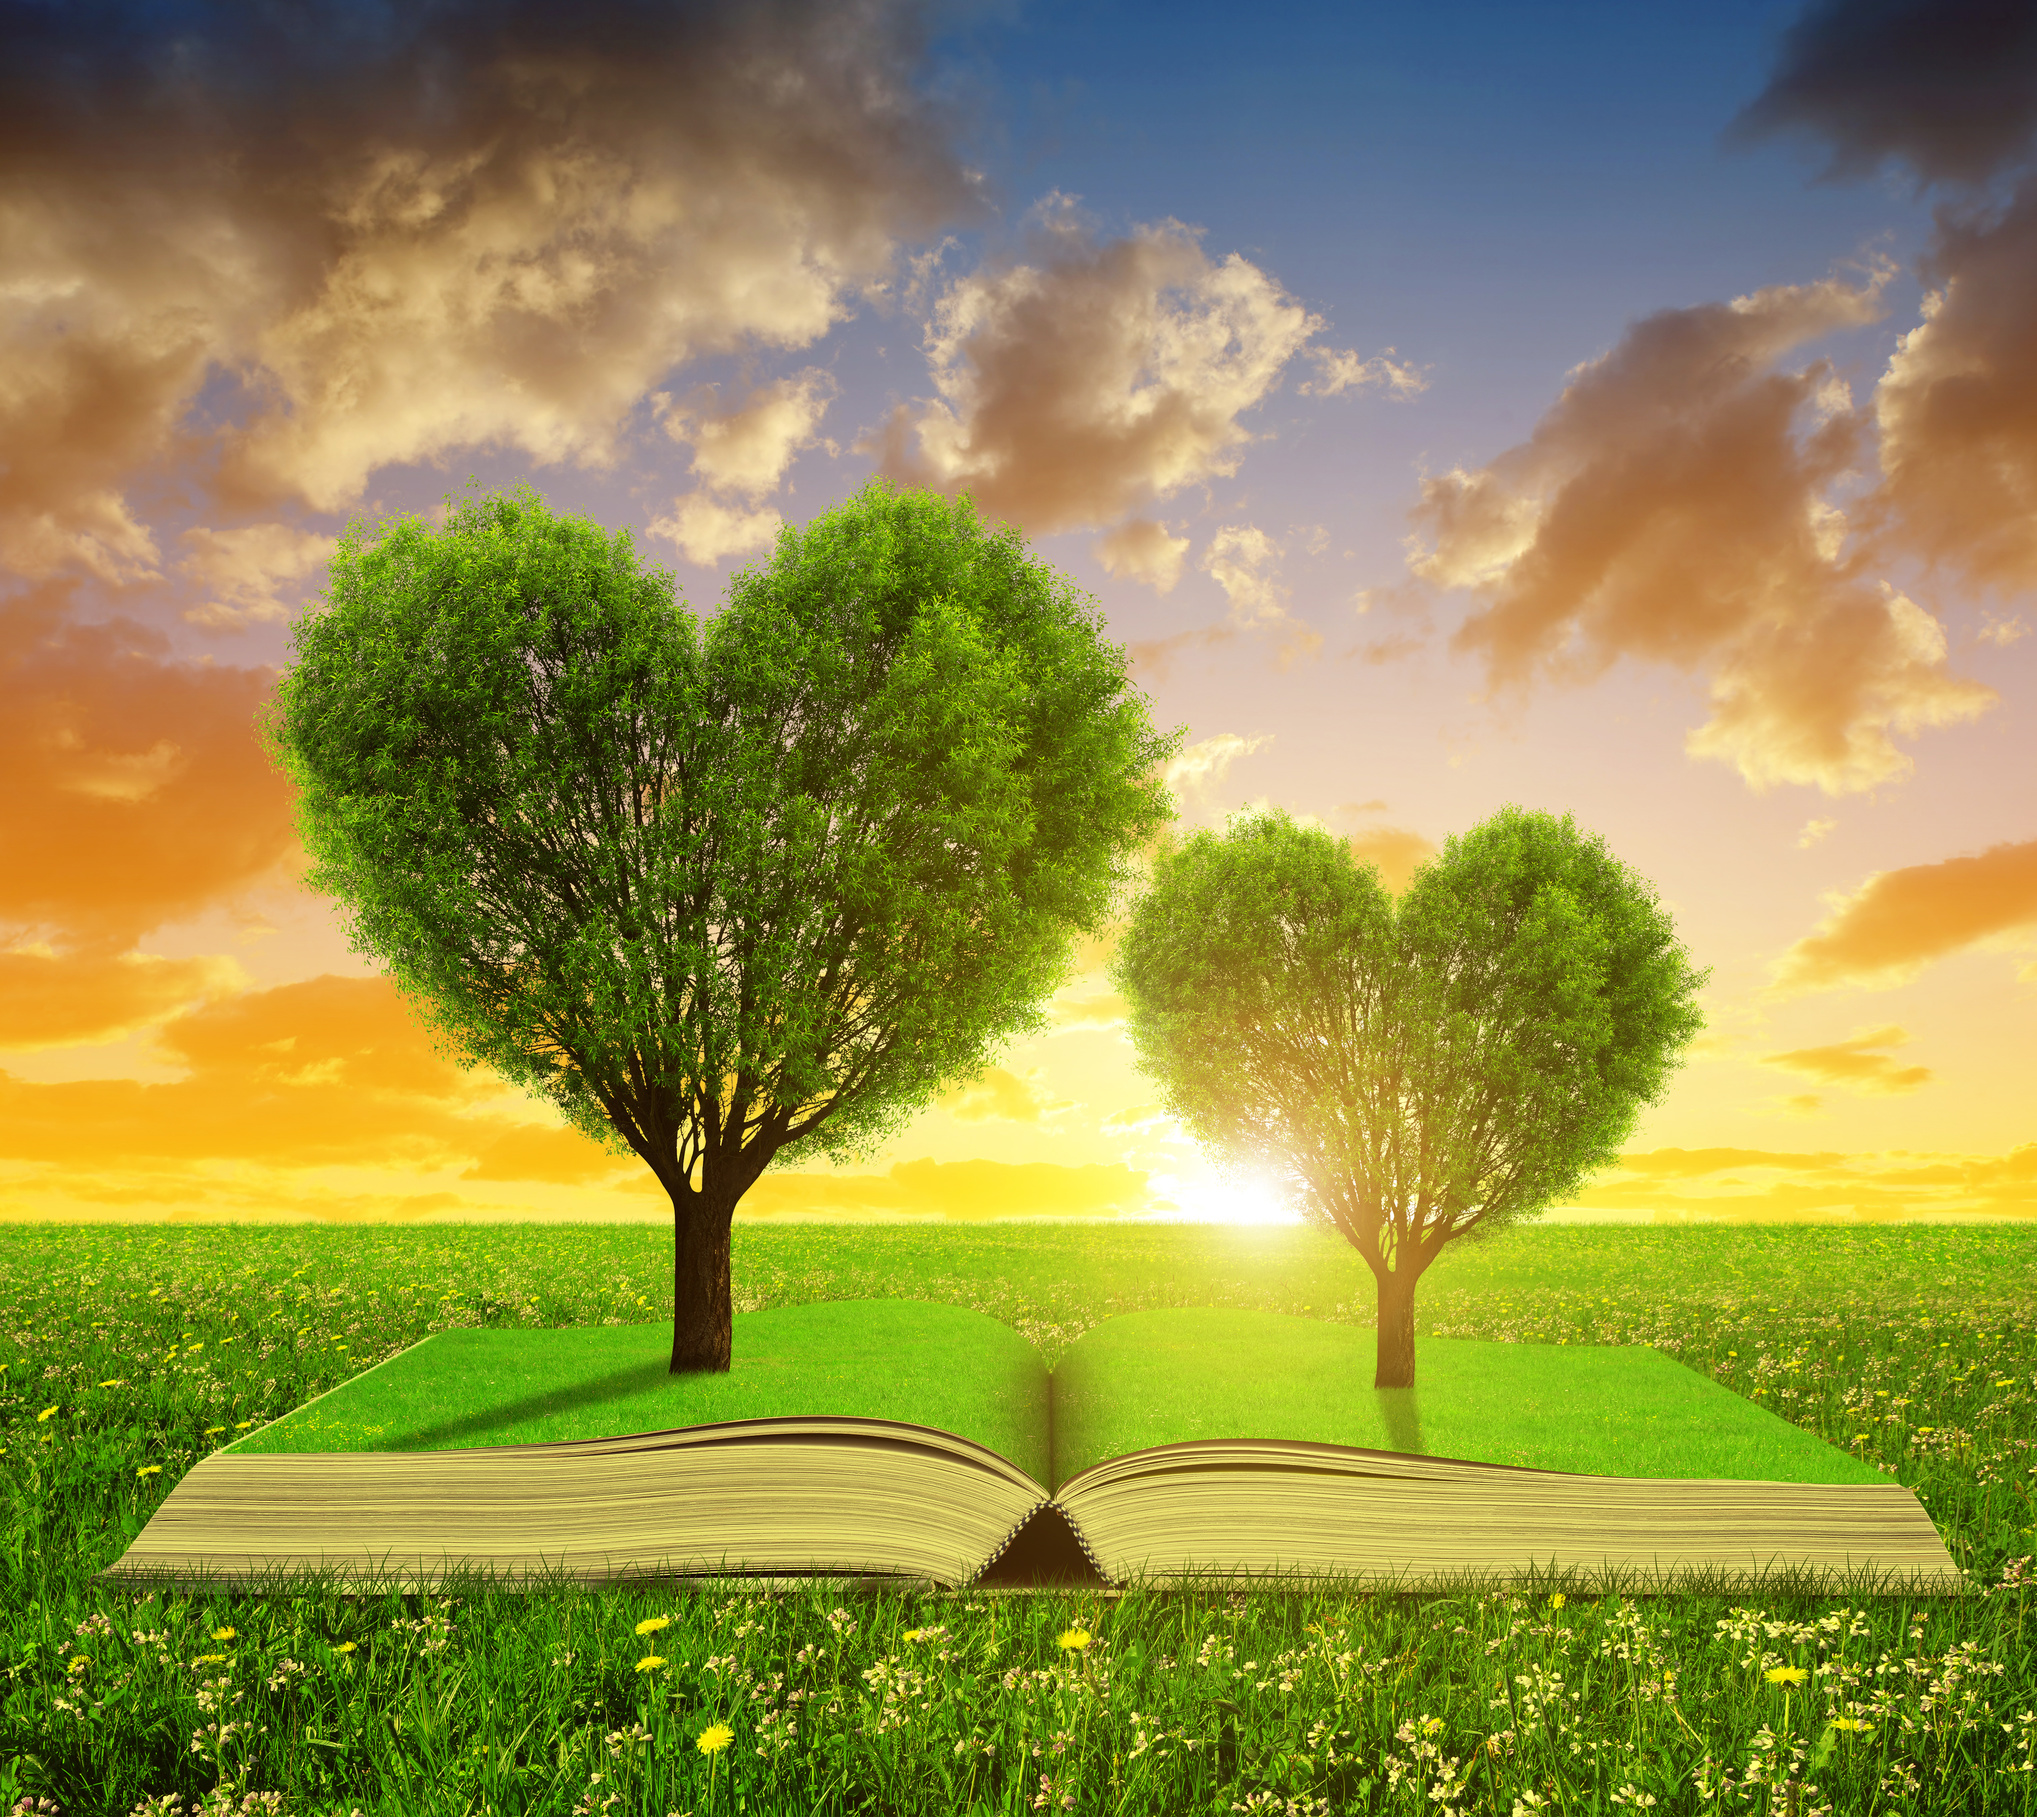 Book with a trees in the shape of heart on meadow at sunset.